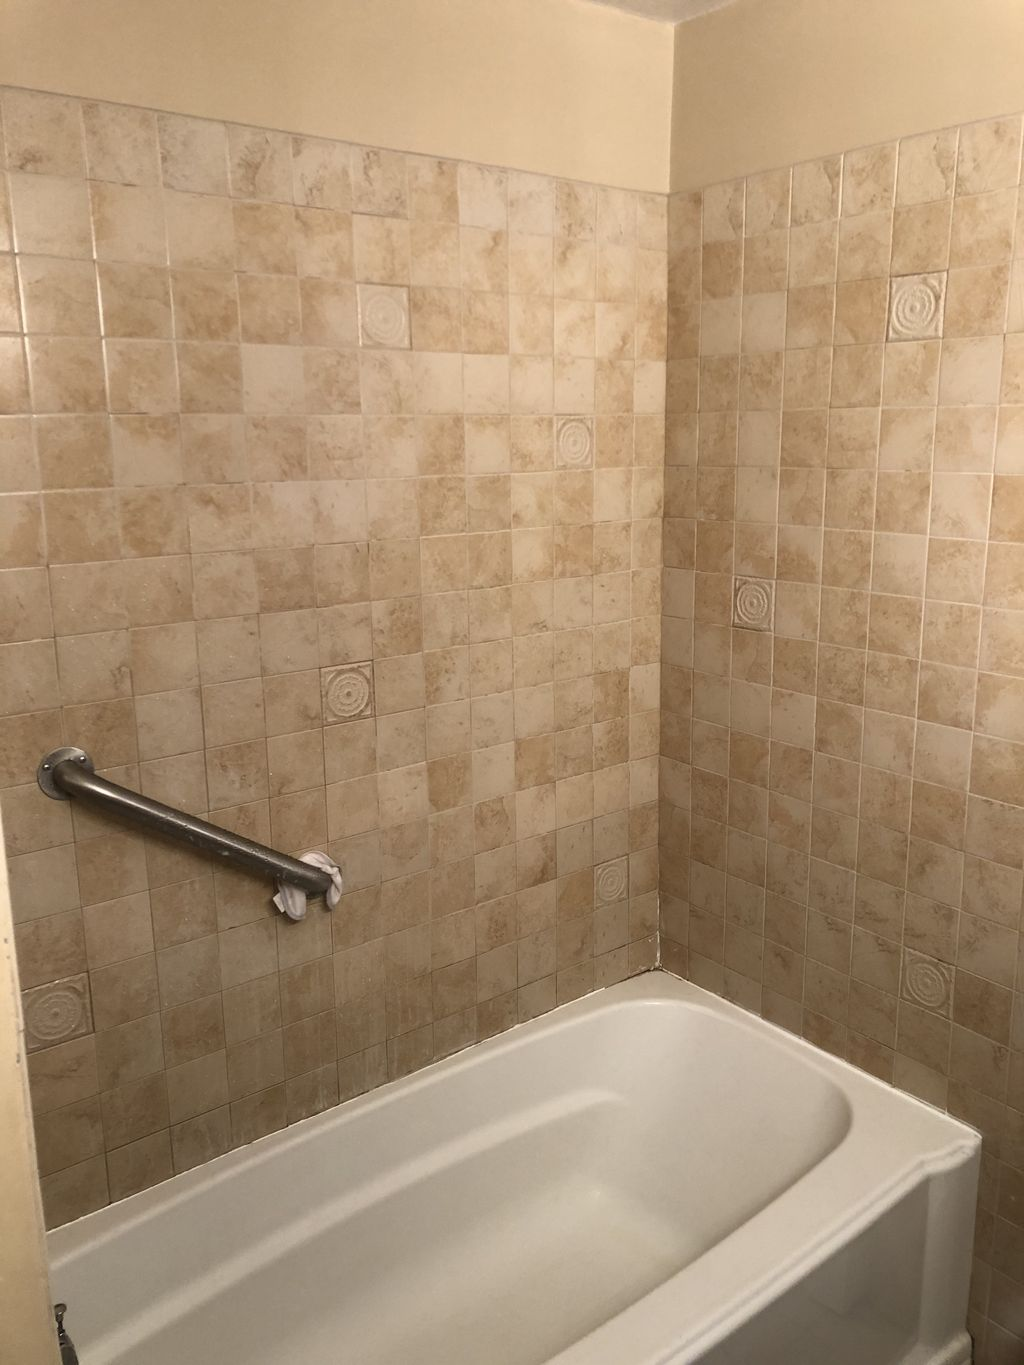 Tile Installation and Replacement - Cranston 2020